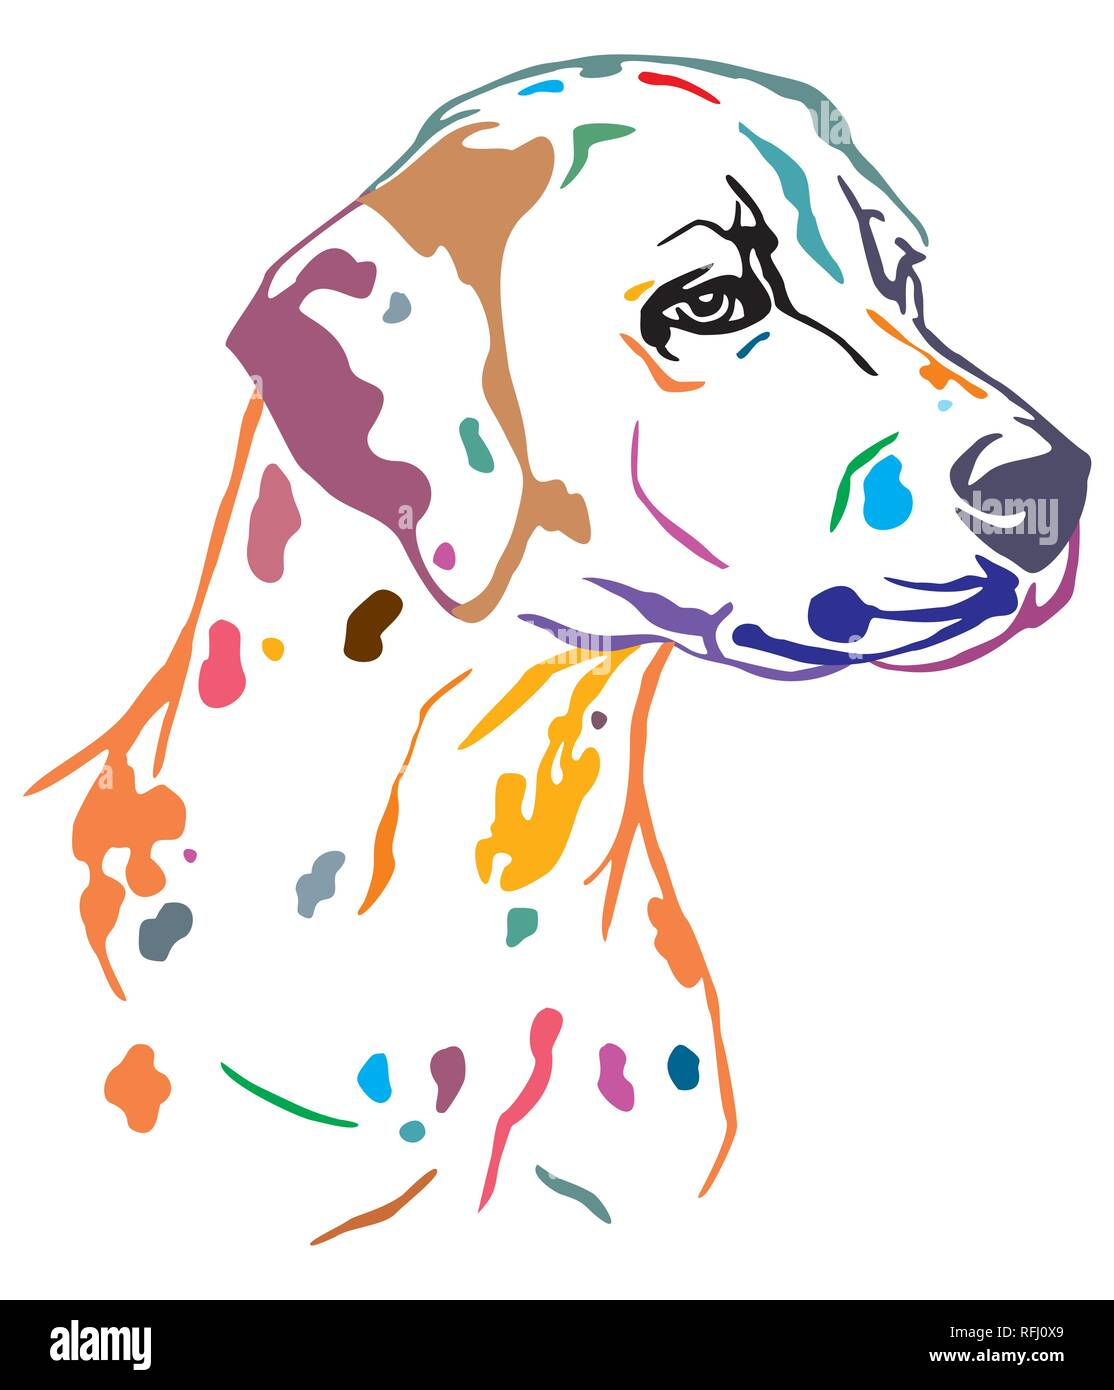 Colorful decorative outline portrait of Dog Dalmatian looking in profile, vector illustration in different colors isolated on white background. Image  - Stock Vector